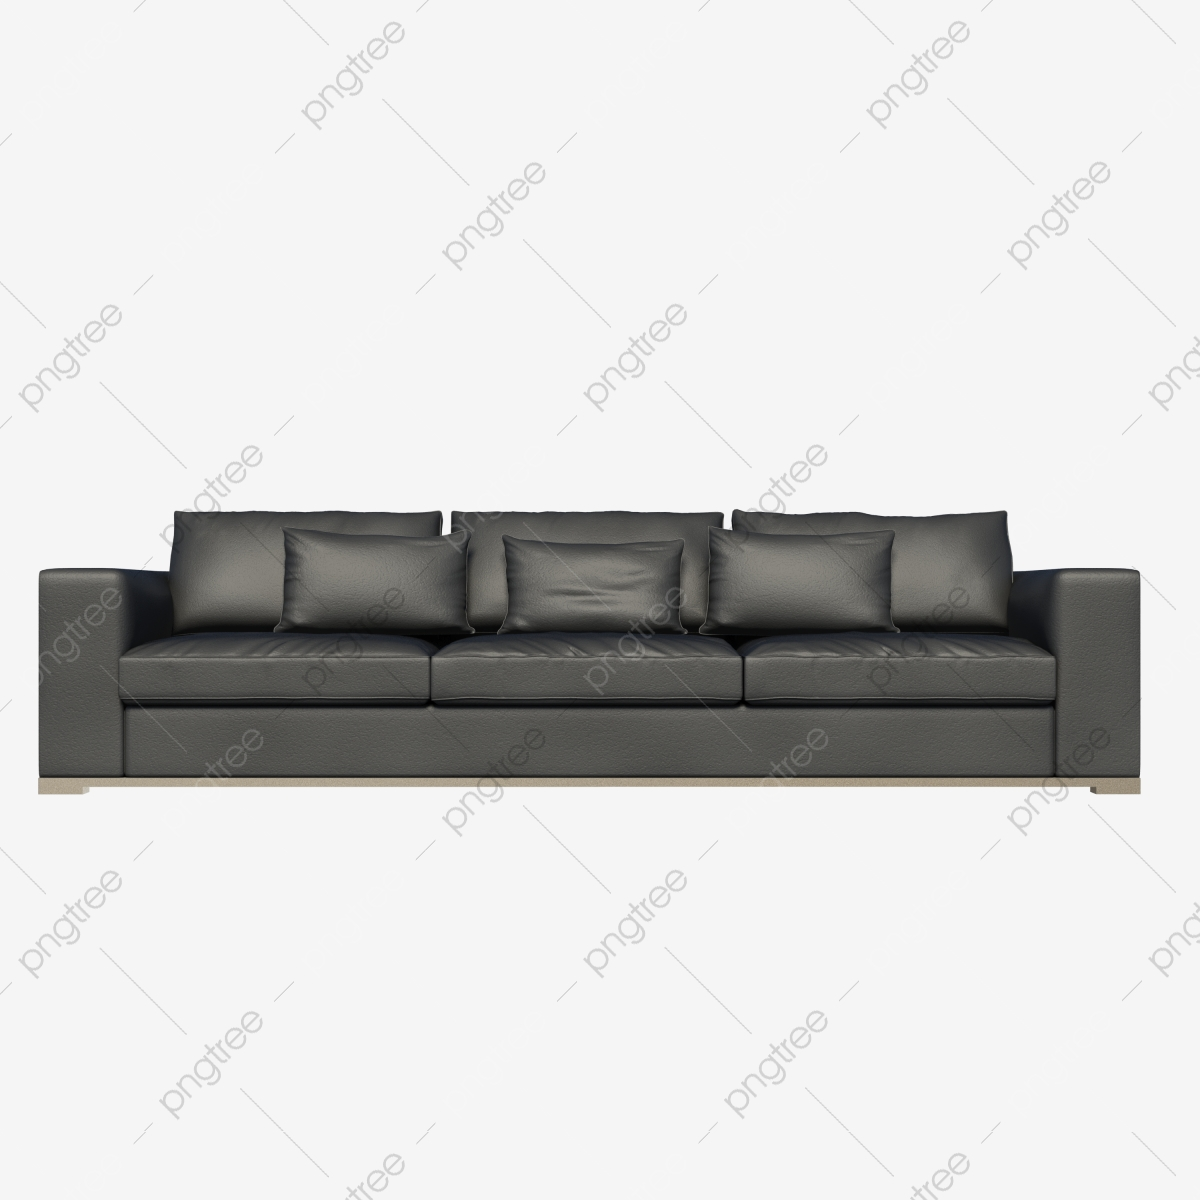 home furniture grey couch furniture grey modern sofa modern sofa png transparent clipart image and psd file for free download https pngtree com freepng home furniture grey couch 4452989 html